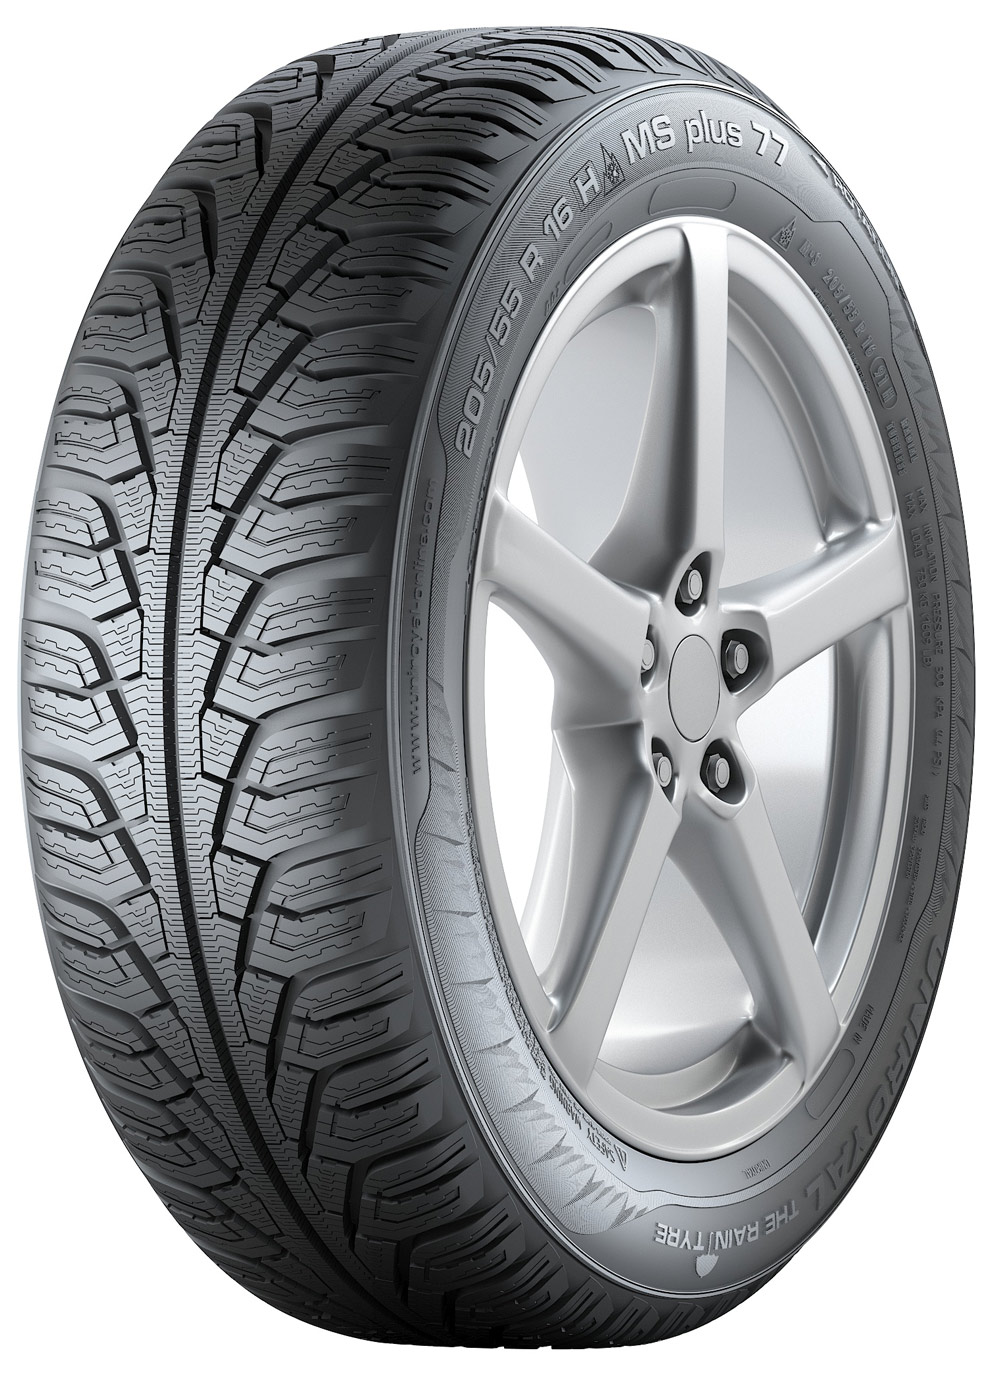 UNIROYAL MS PLUS 77 205/60 R 15